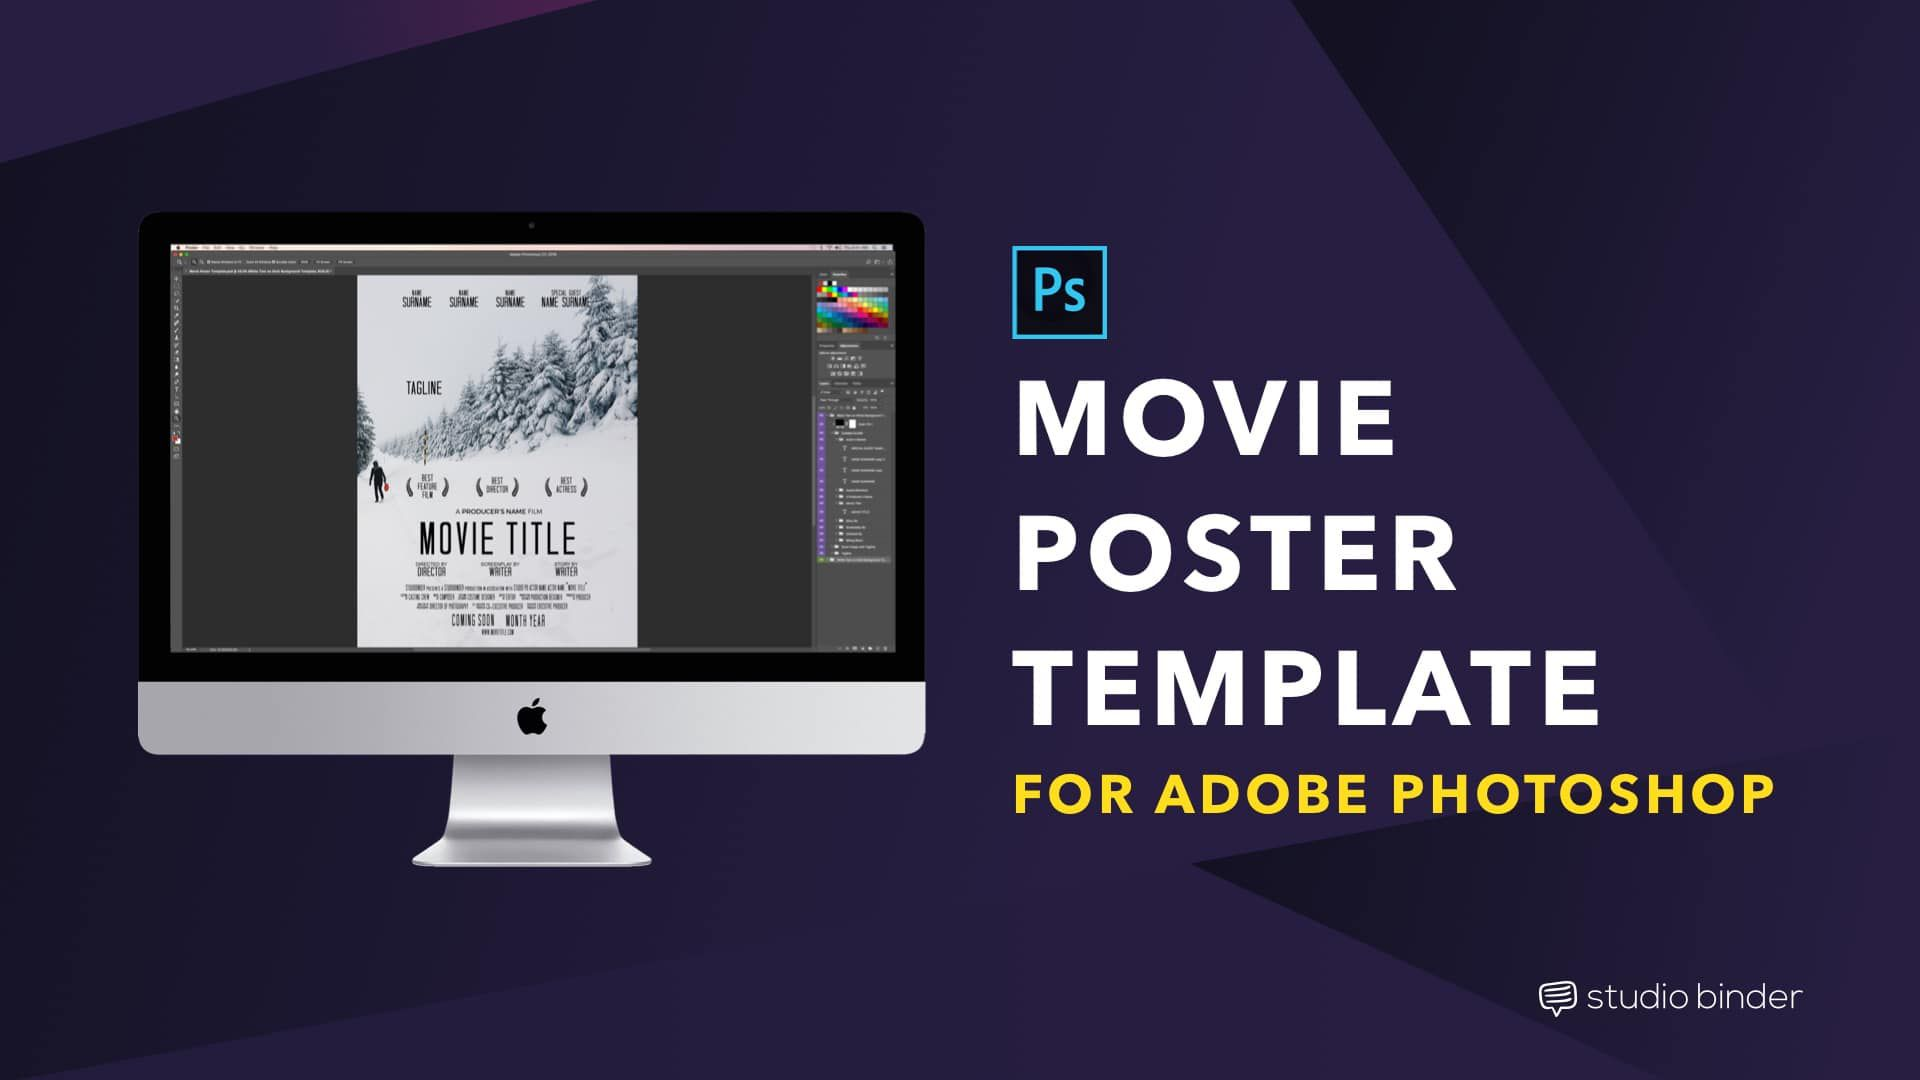 009 Magnificent Adobe Photoshop Psd Poster Template Free Download Sample Full